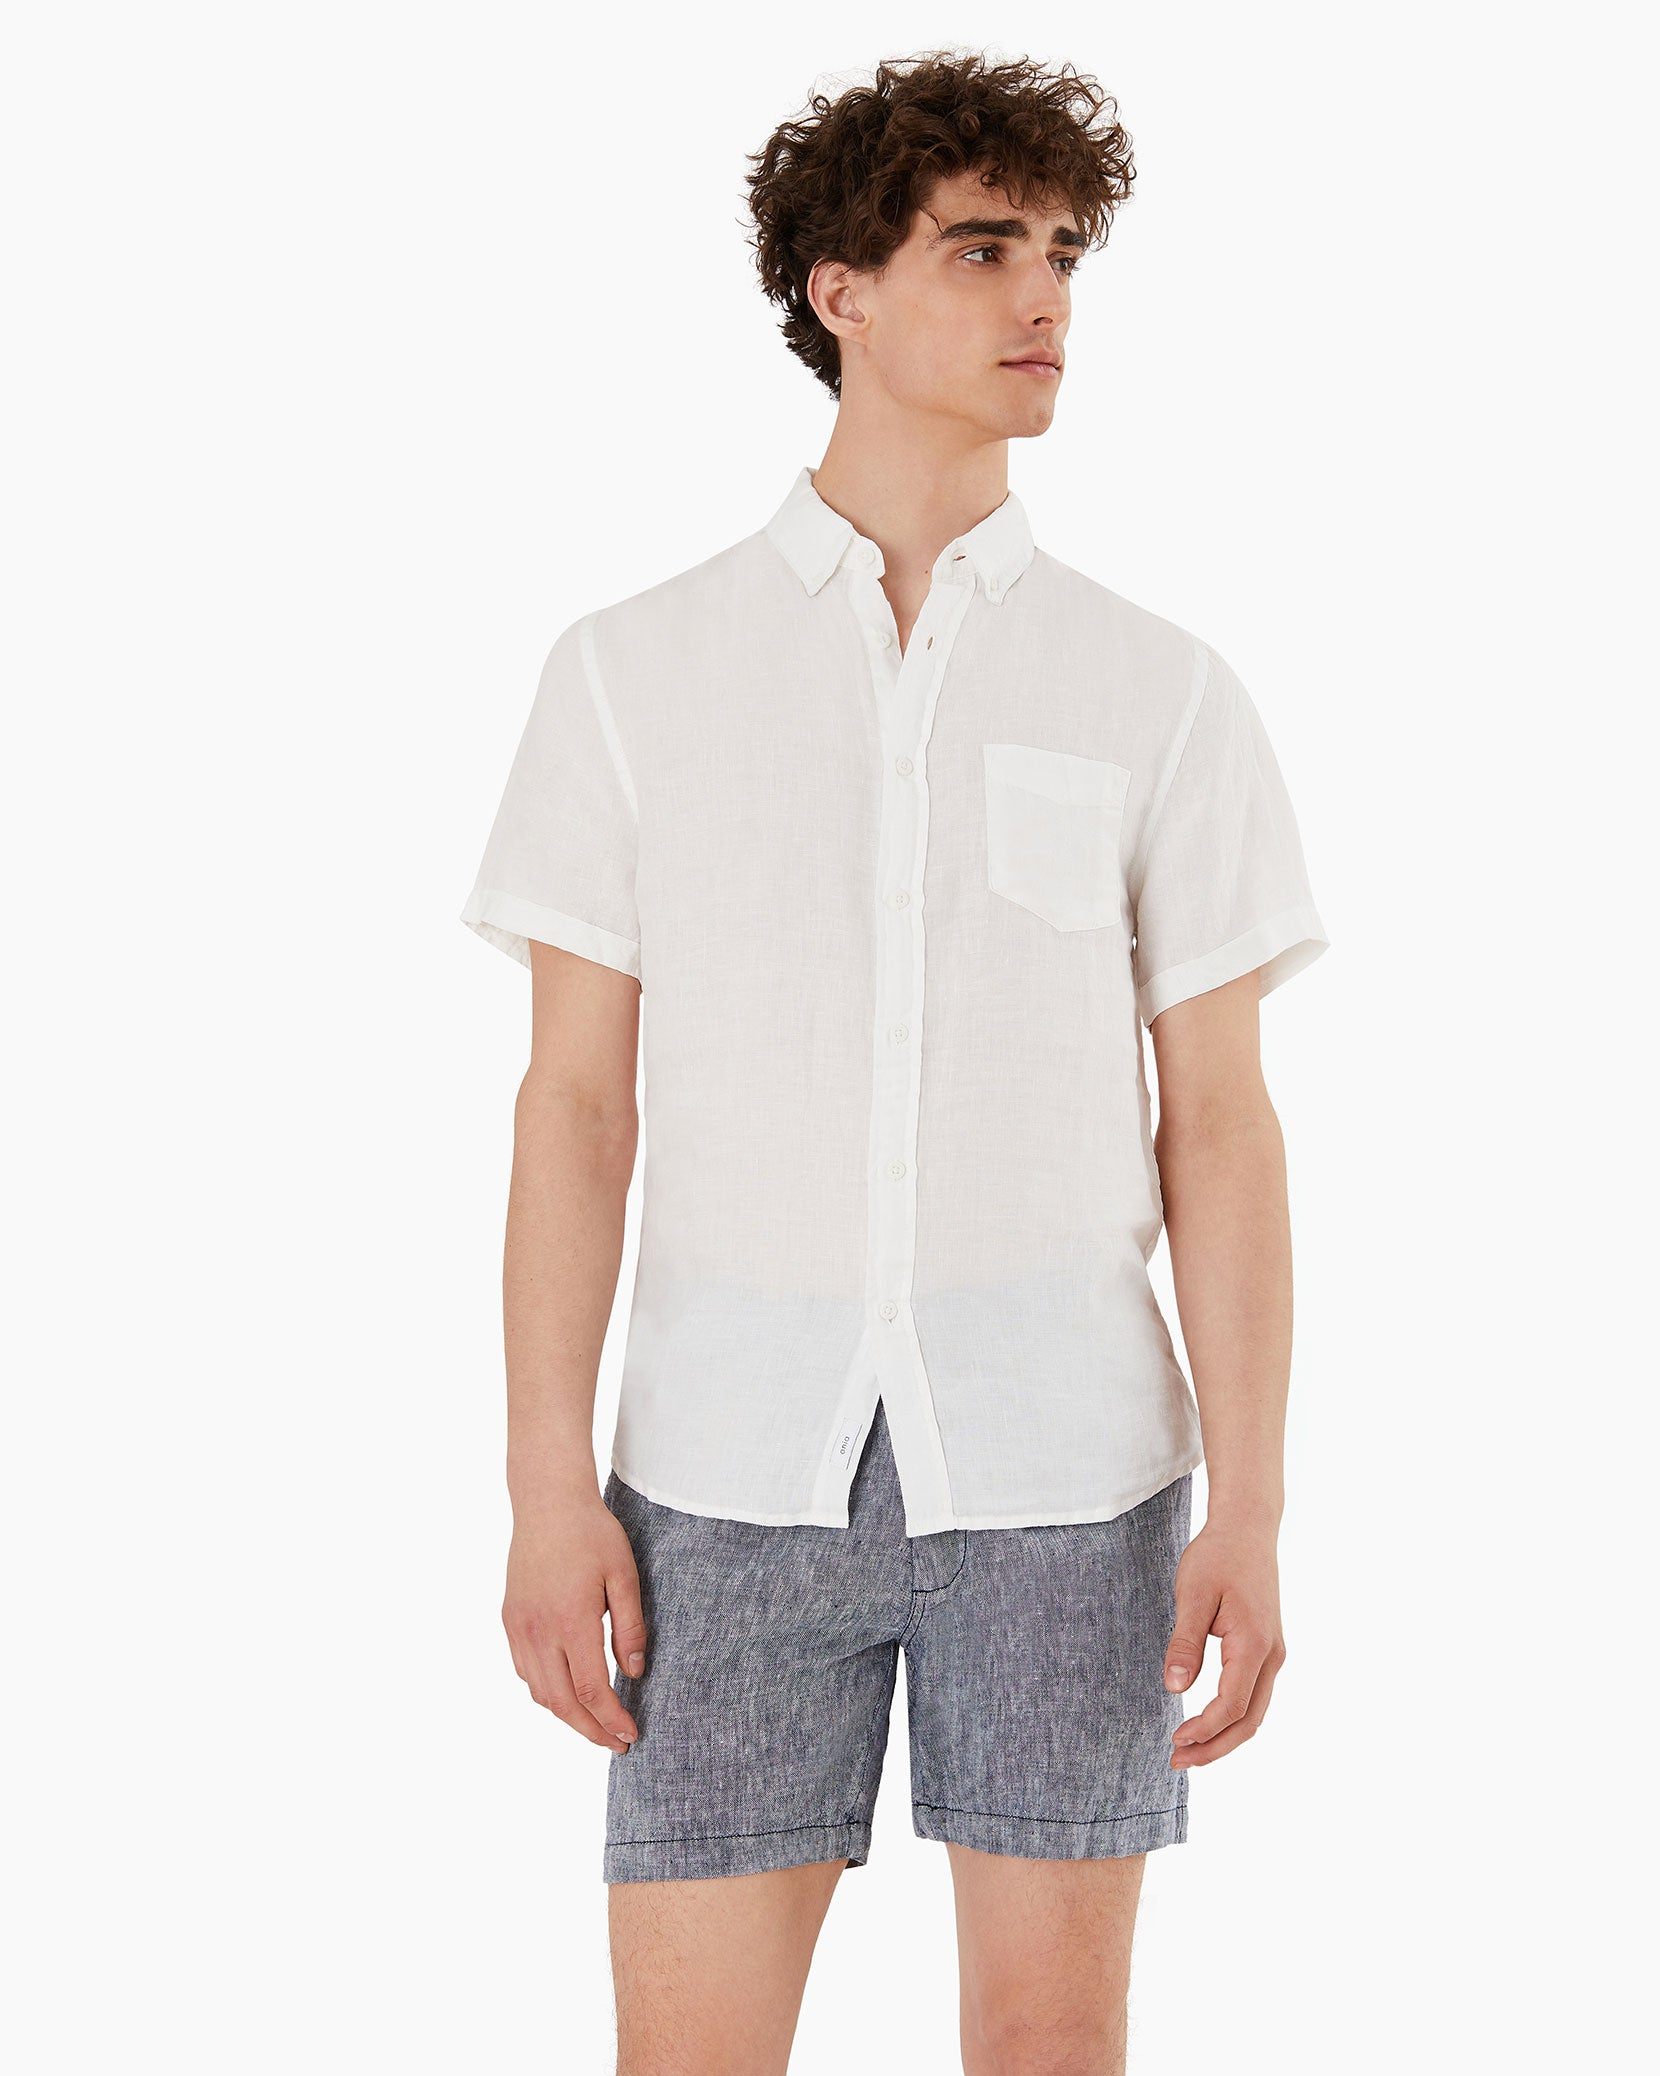 Stretch Linen Short Sleeve Shirt in White - 2 - Onia